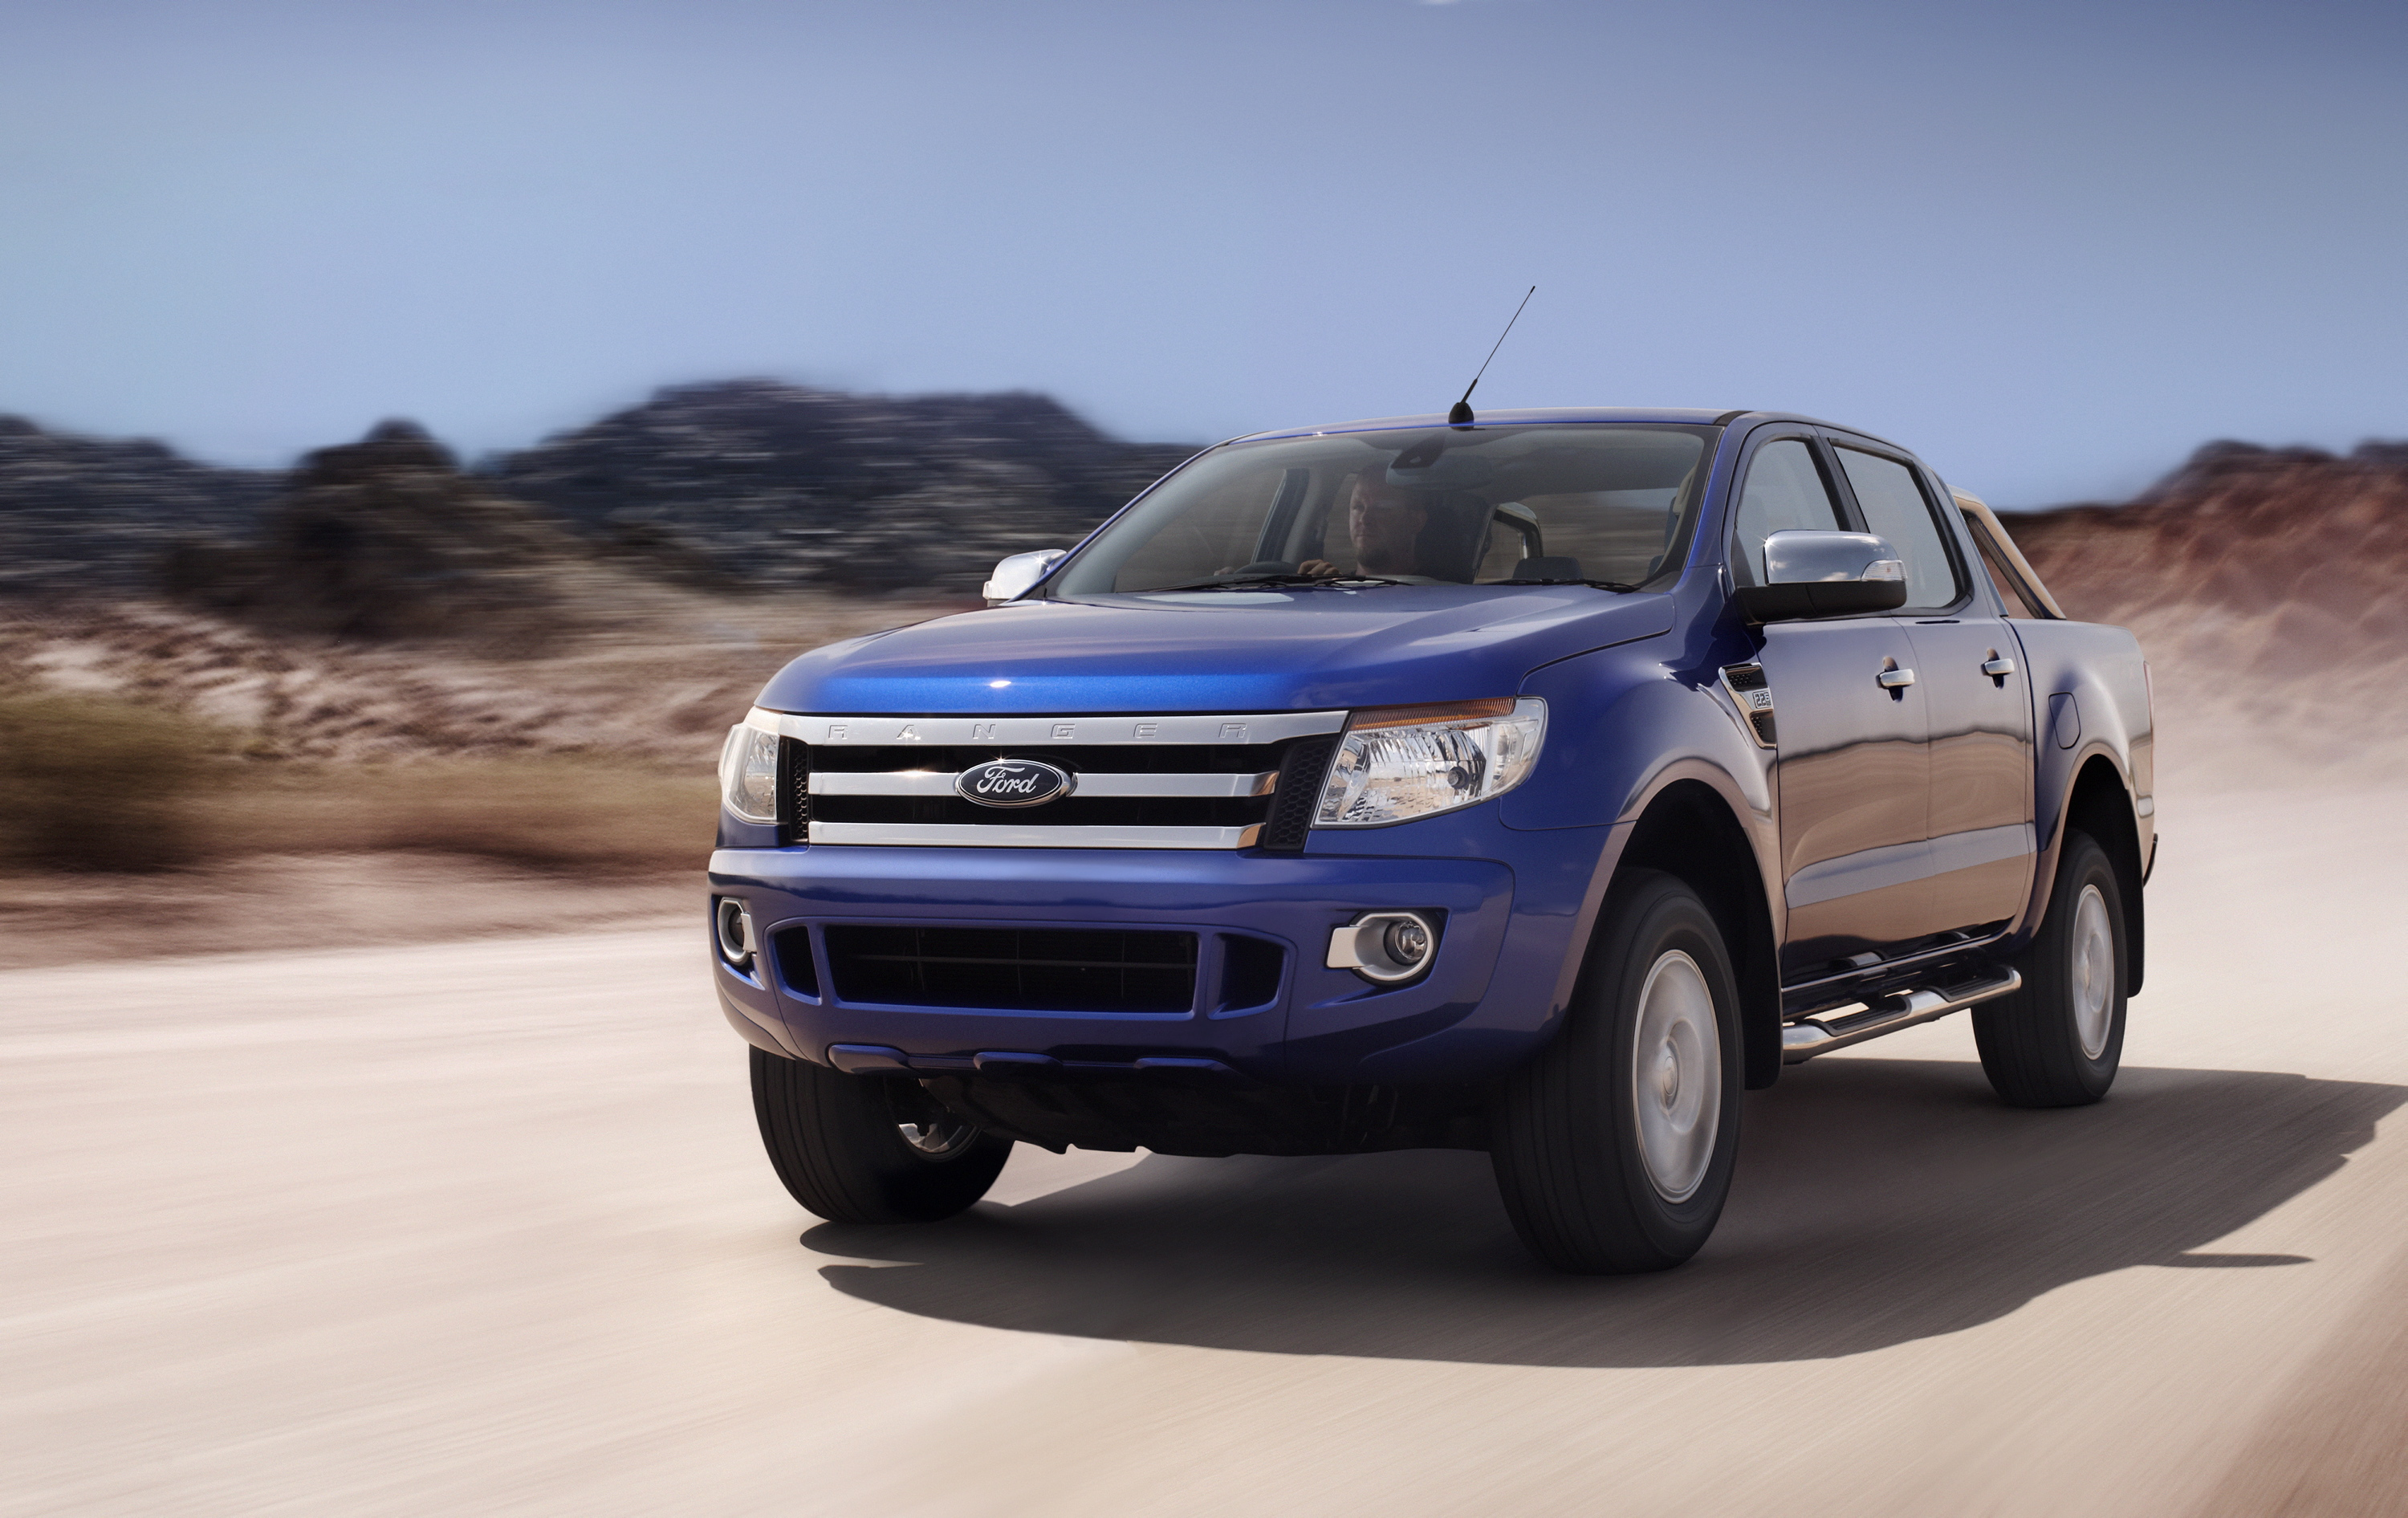 2012 ford ranger look out behind